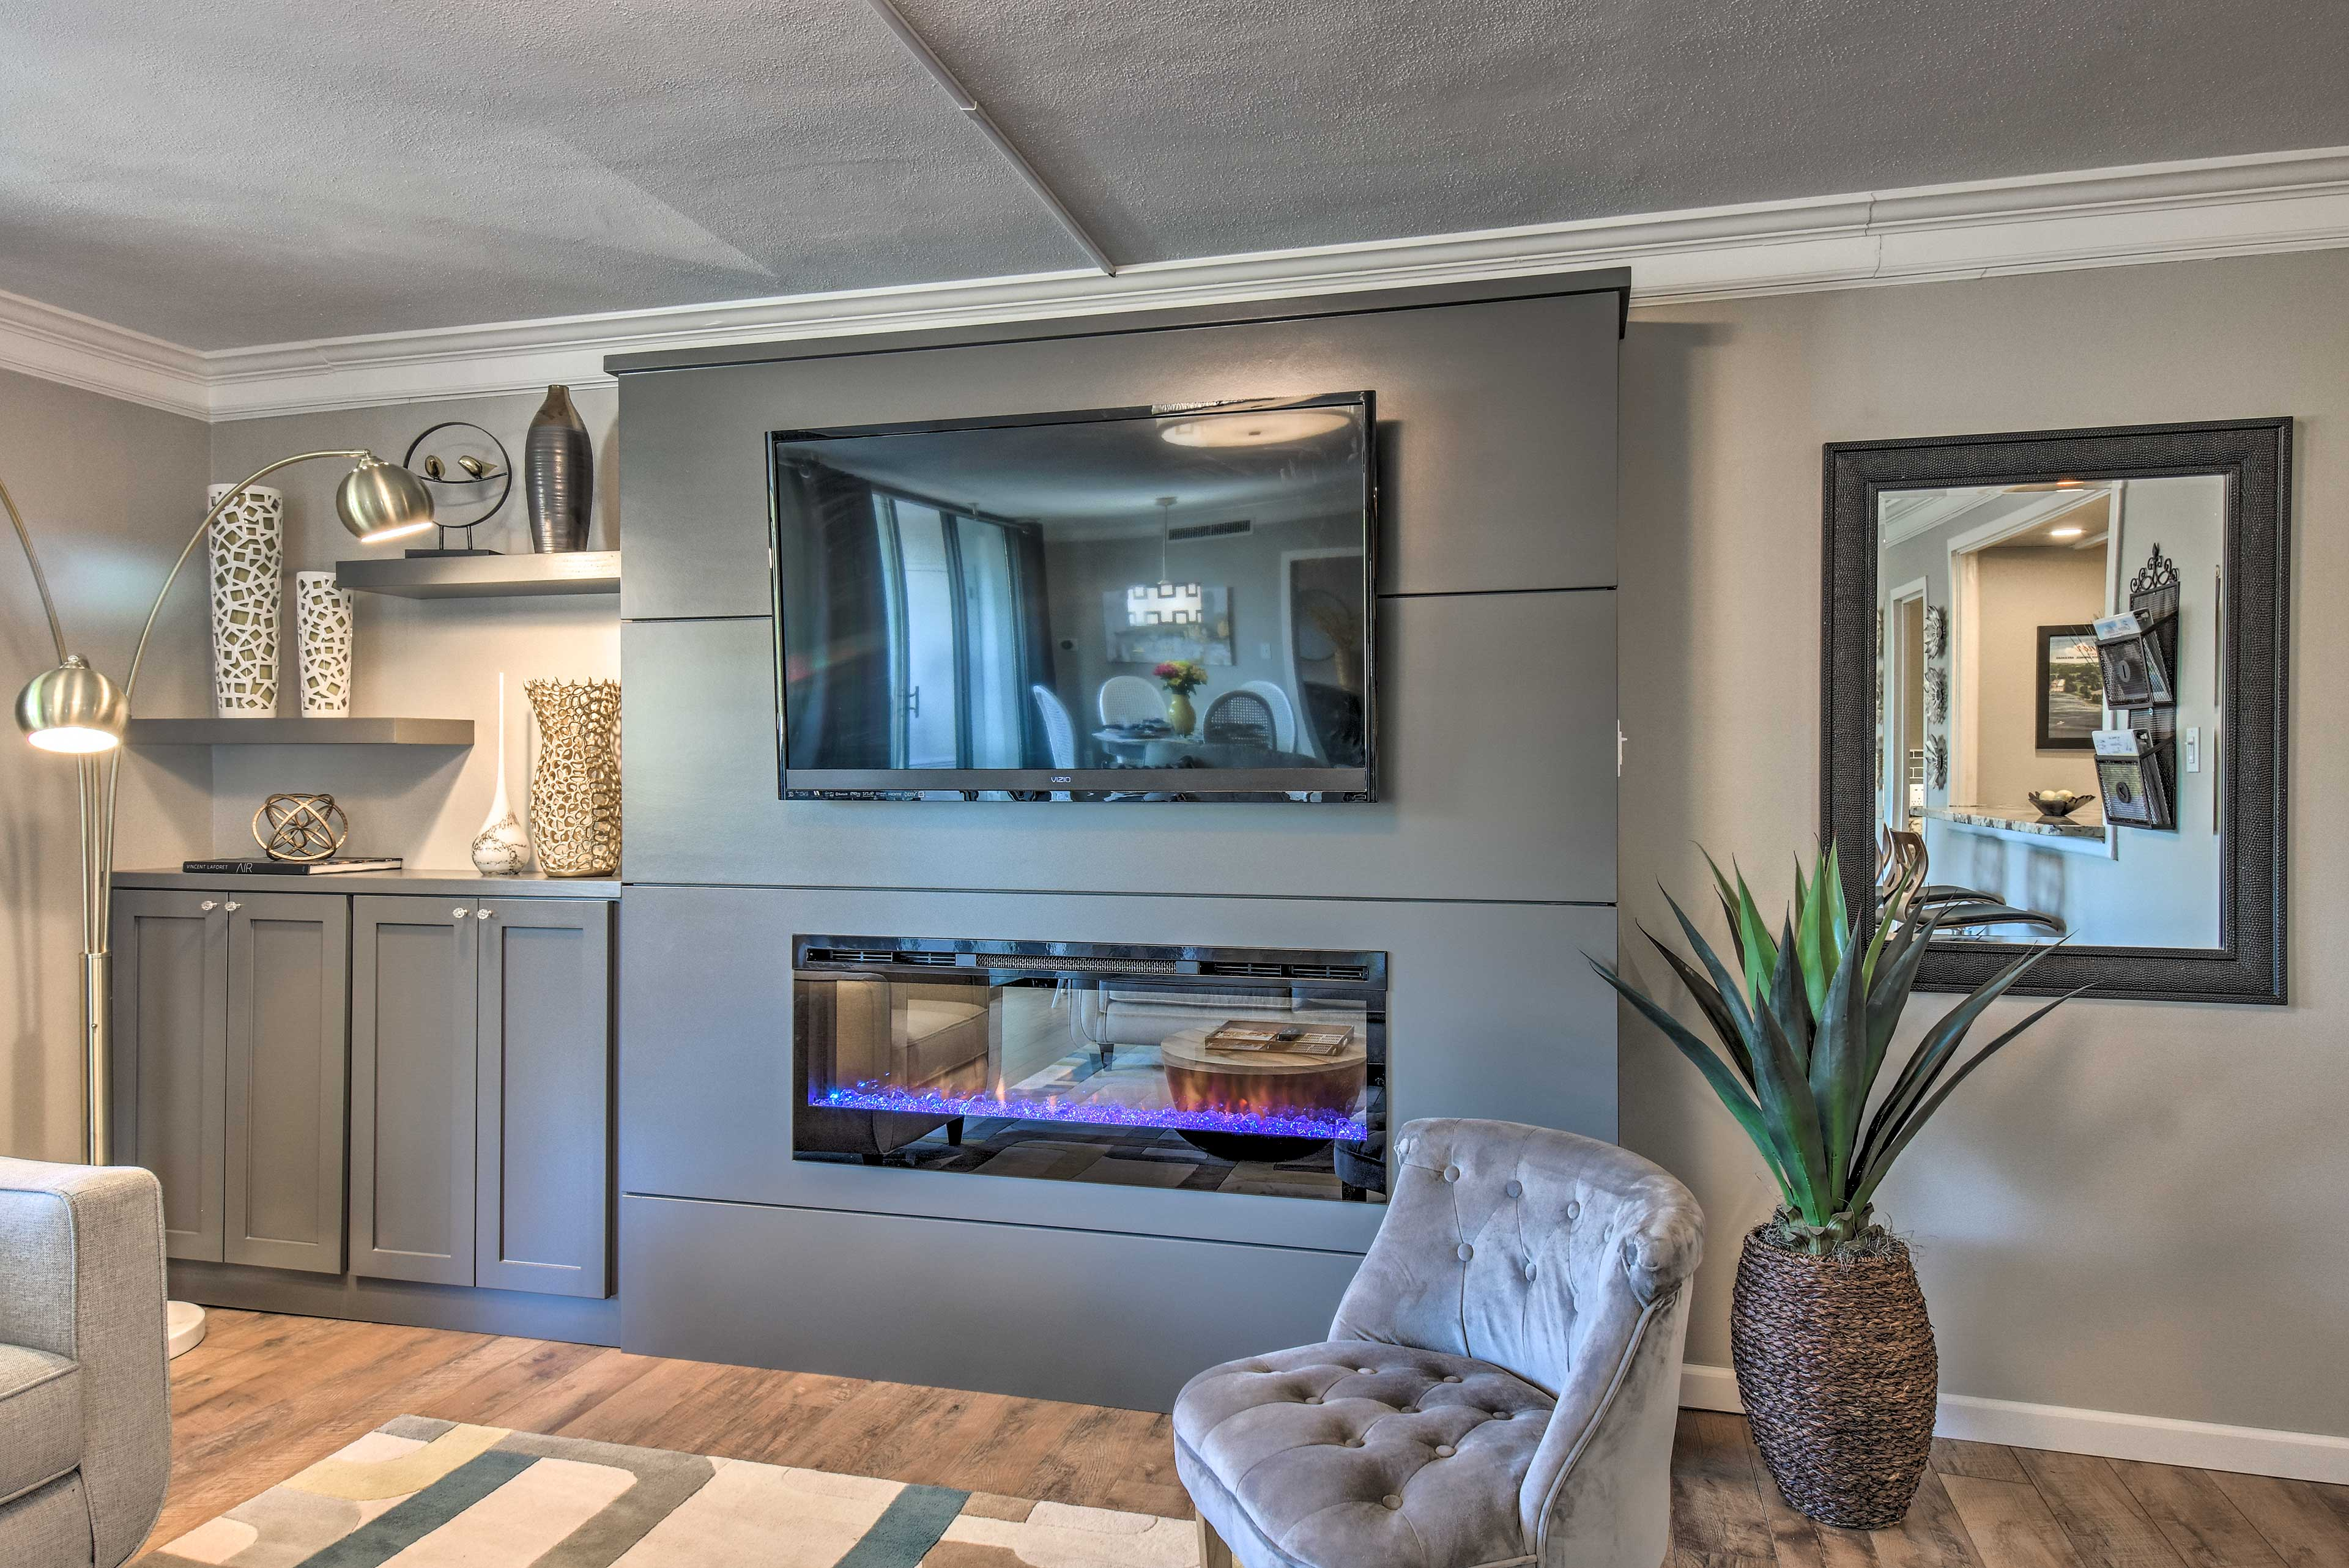 Warm up next to the colorful gas fireplace.